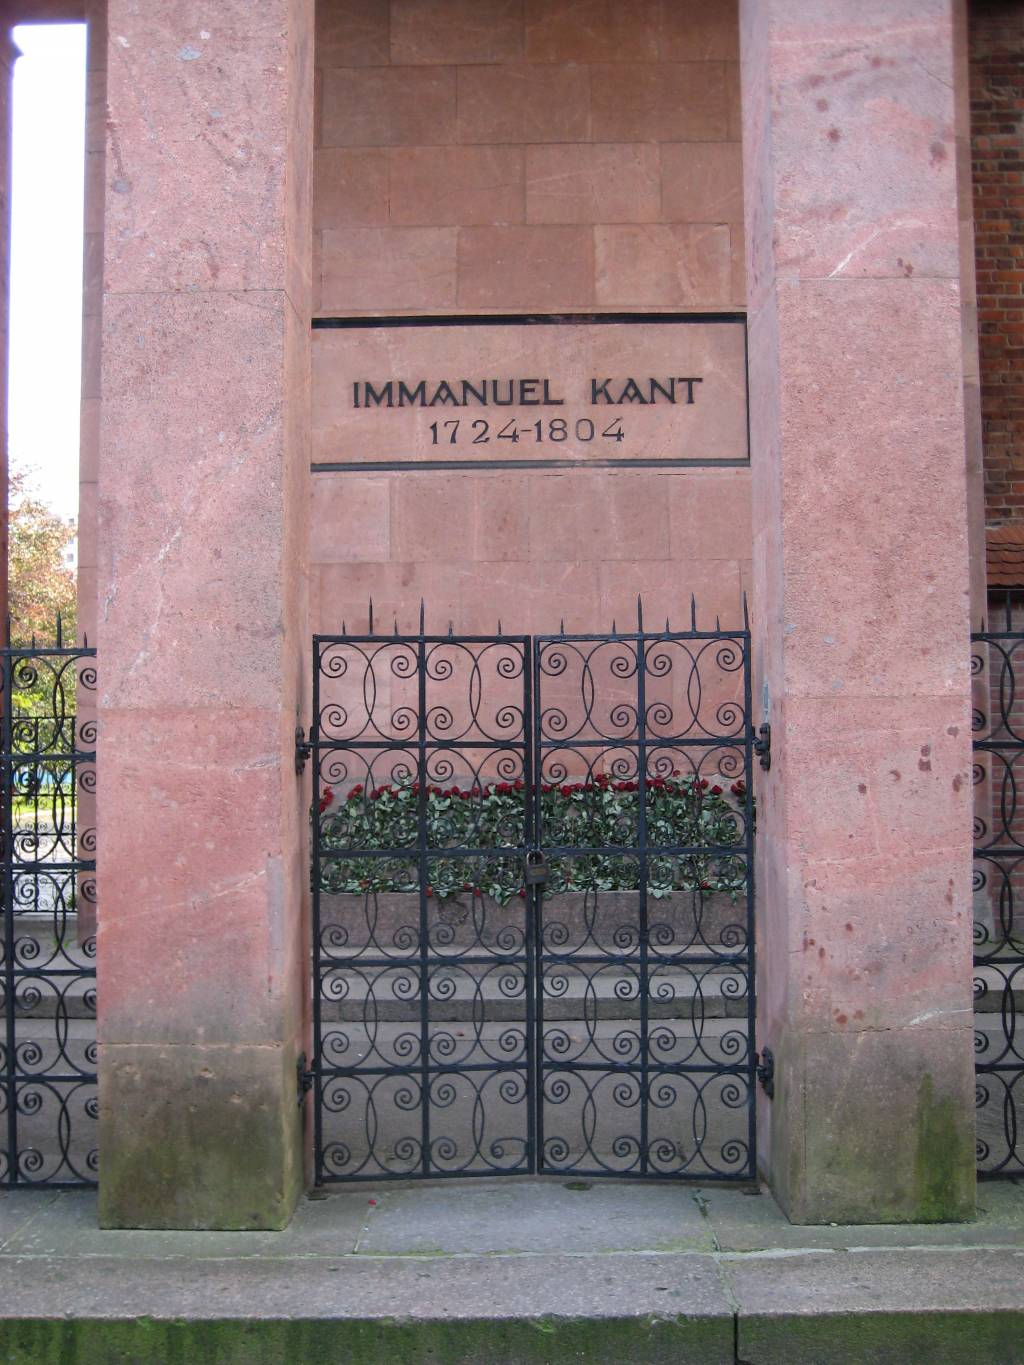 kant s dynamically sublime  english immanuel kant tomb in koenigsberg ethnbspntilde131ntilde129ntilde129ethordmethcedilethsup1 eth156ethfrac34ethsup3ethcedileth ethdeg eth152ethfrac14ethfrac14ethdegethfrac12ntilde131ethcedileth ethdeg eth154ethdegethfrac12ntilde130ethdeg ethsup2 eth154ethdegeth ethcedilethfrac12ethcedilethfrac12ethsup3ntilde128ethdegethacuteethmicro eth154ntilde145ethfrac12ethcedilethsup3ntilde129ethplusmnntilde128ethmicroethsup3ethmicro